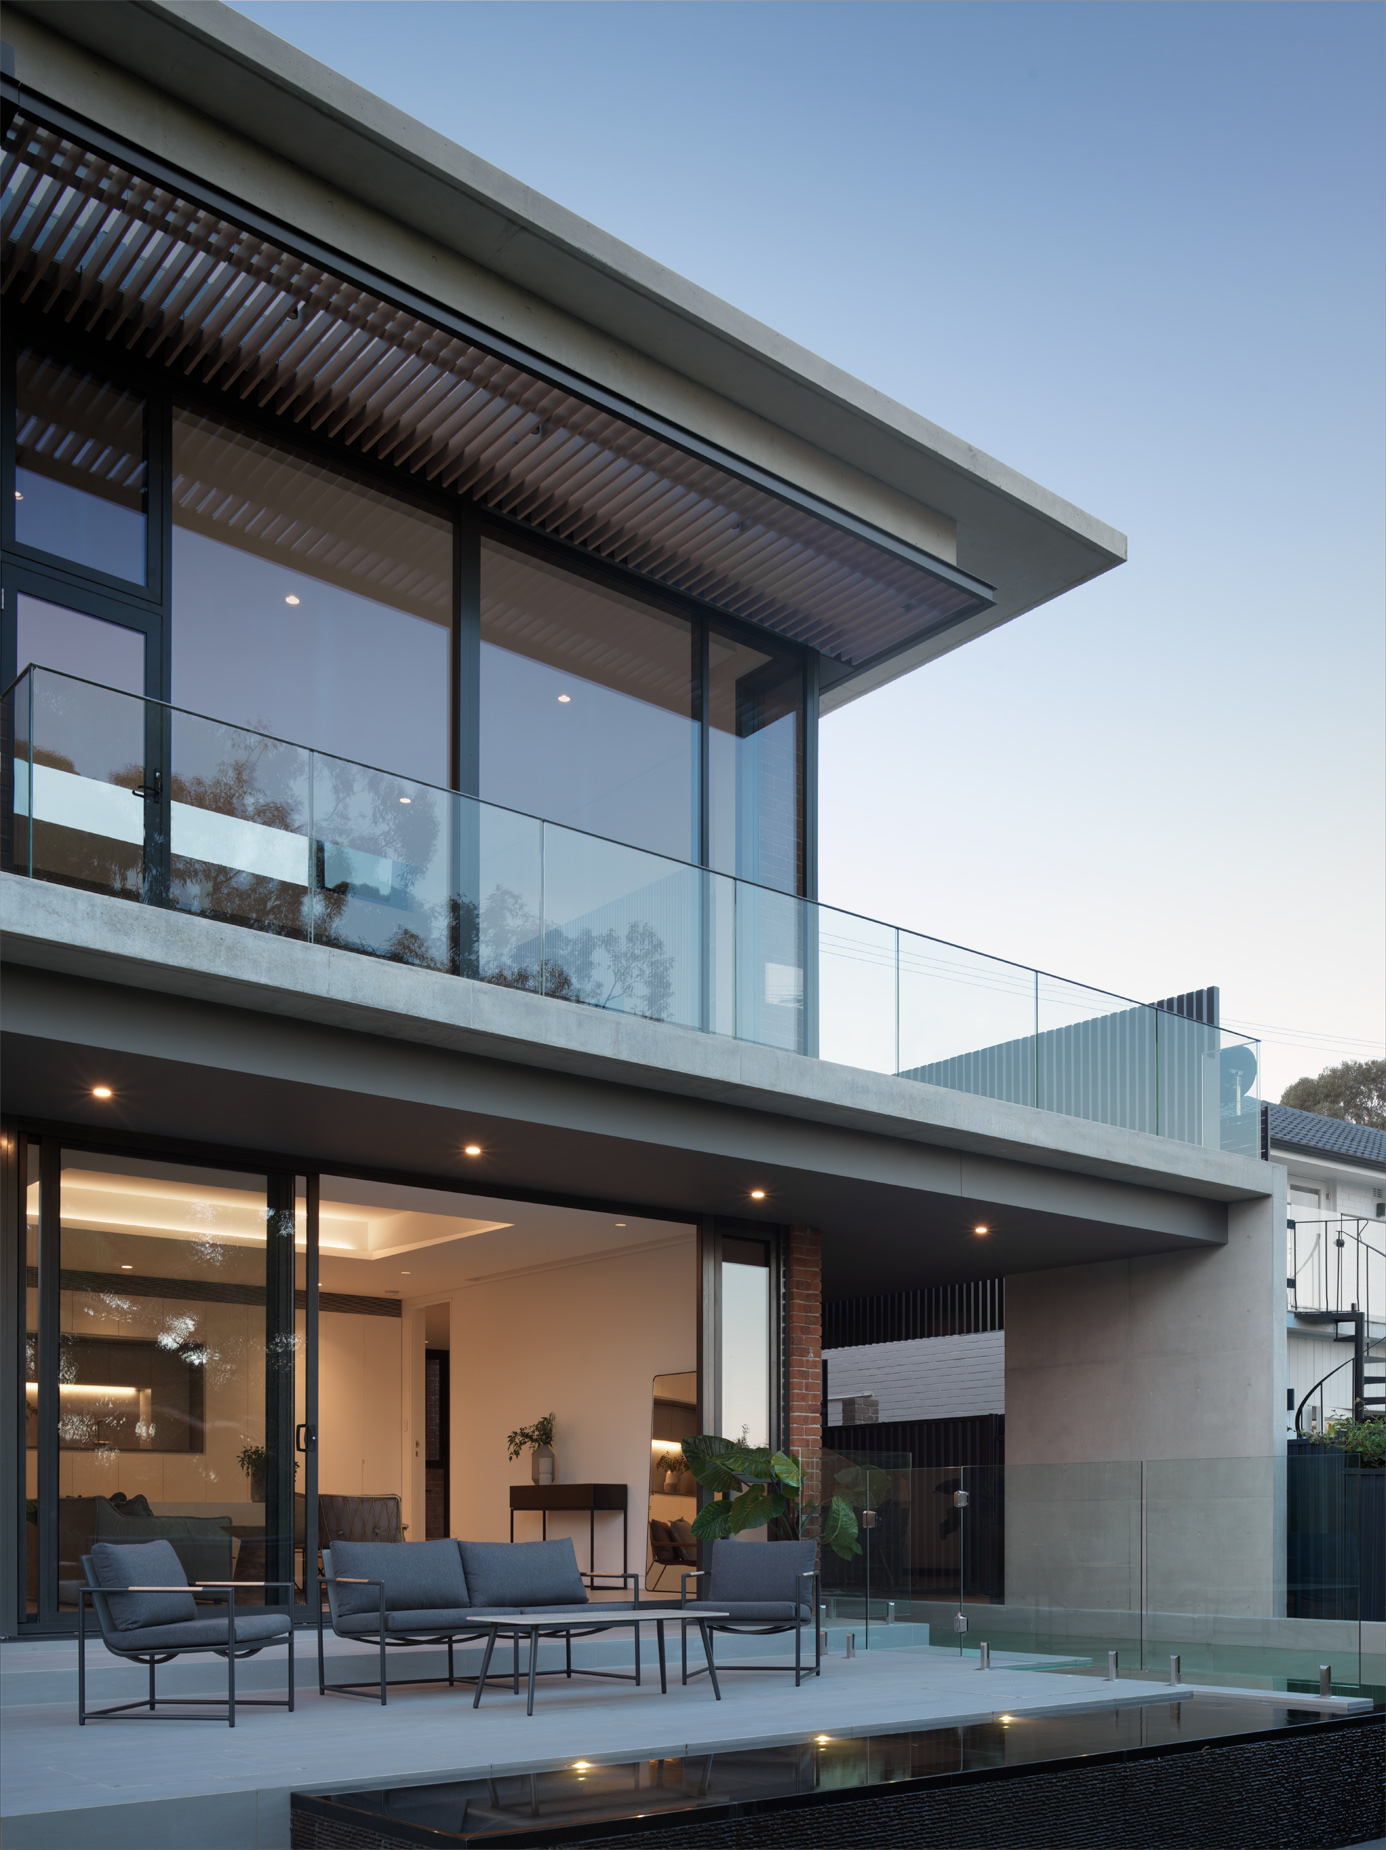 luke-butterly-2020-Cove-Cove-House-by-Dieppe-Design-Architecture-Sydney-NSW-28